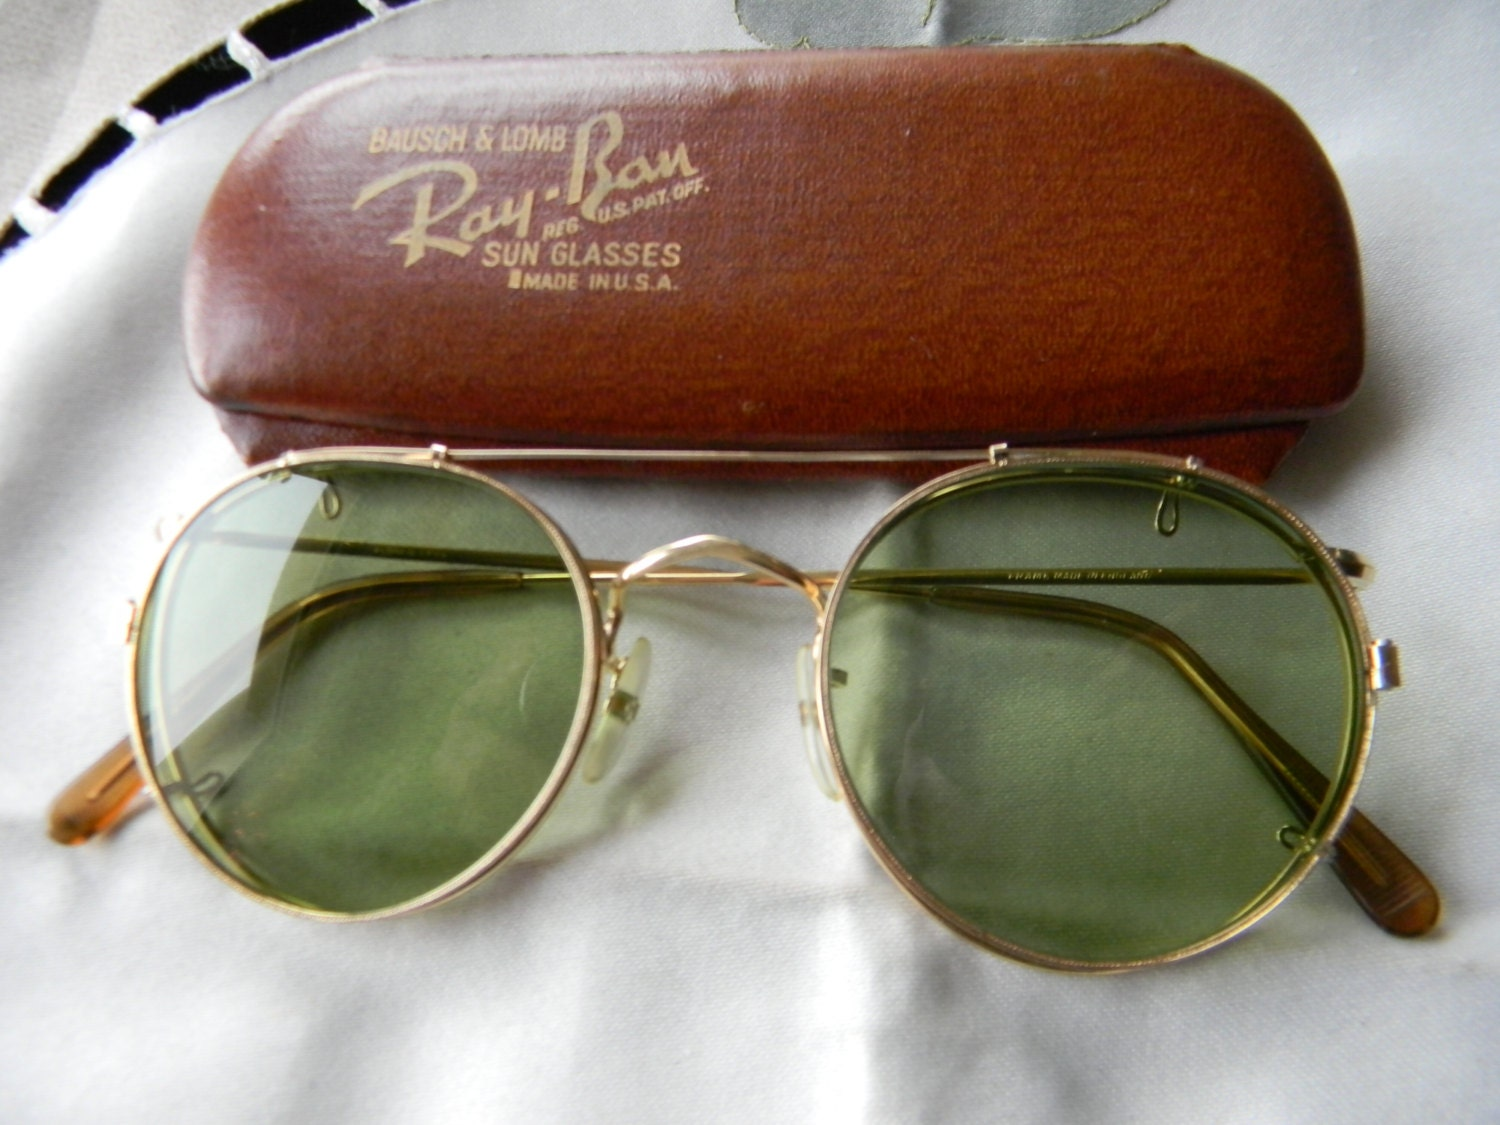 8b26a04487806 Are Ray Ban Made In Italy   David Simchi-Levi